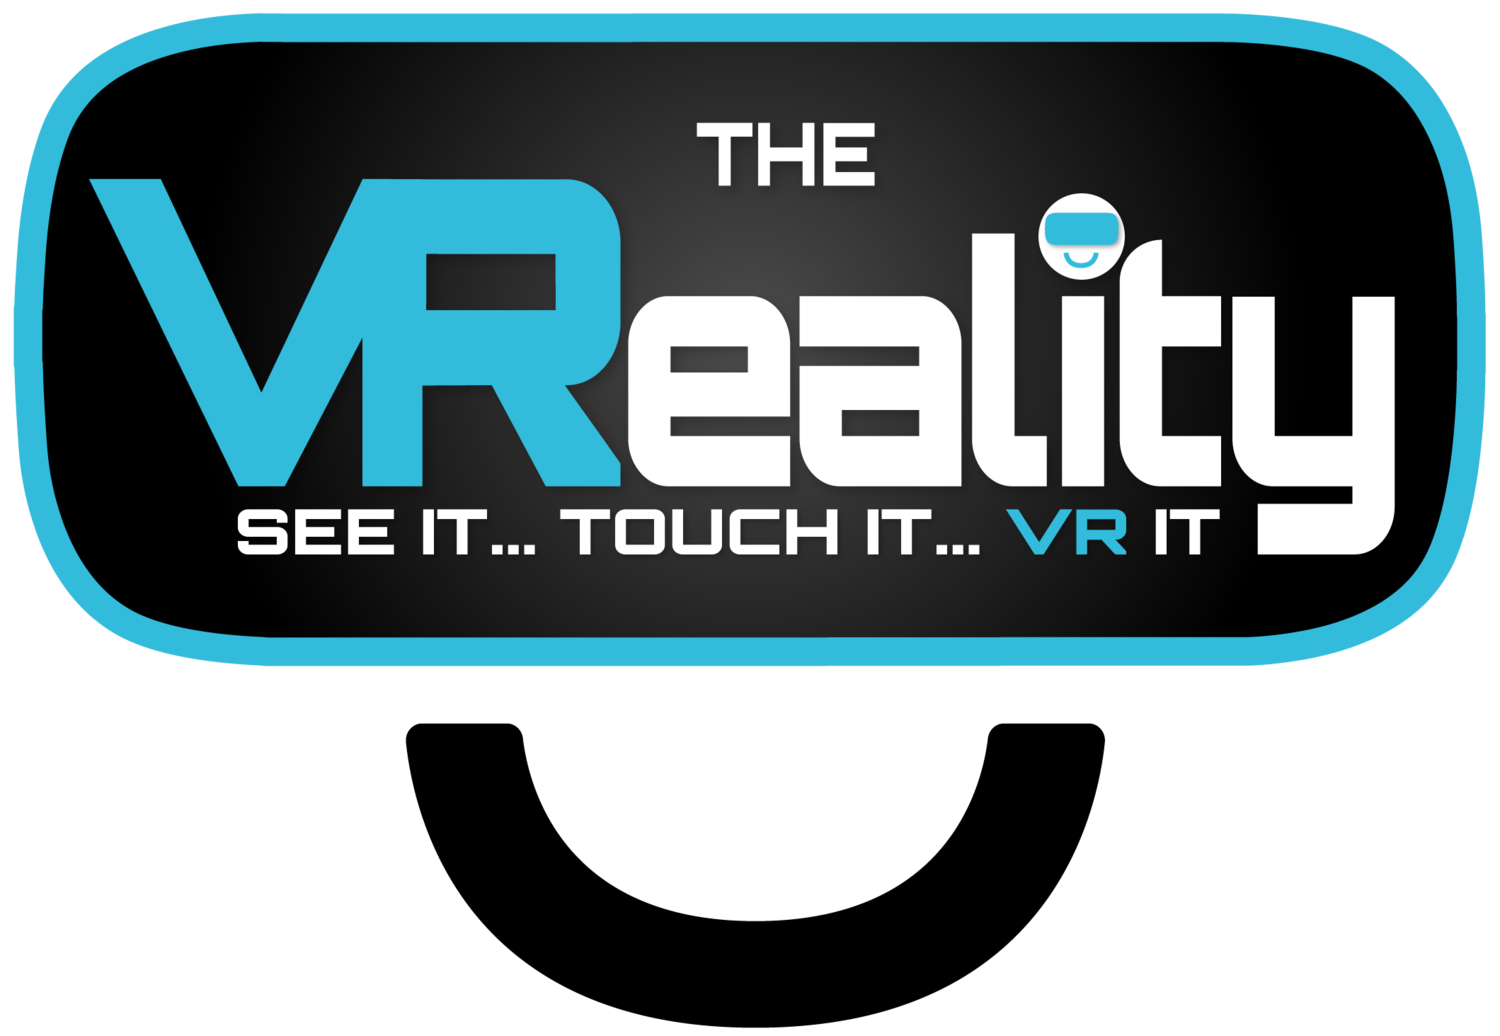 The VReality